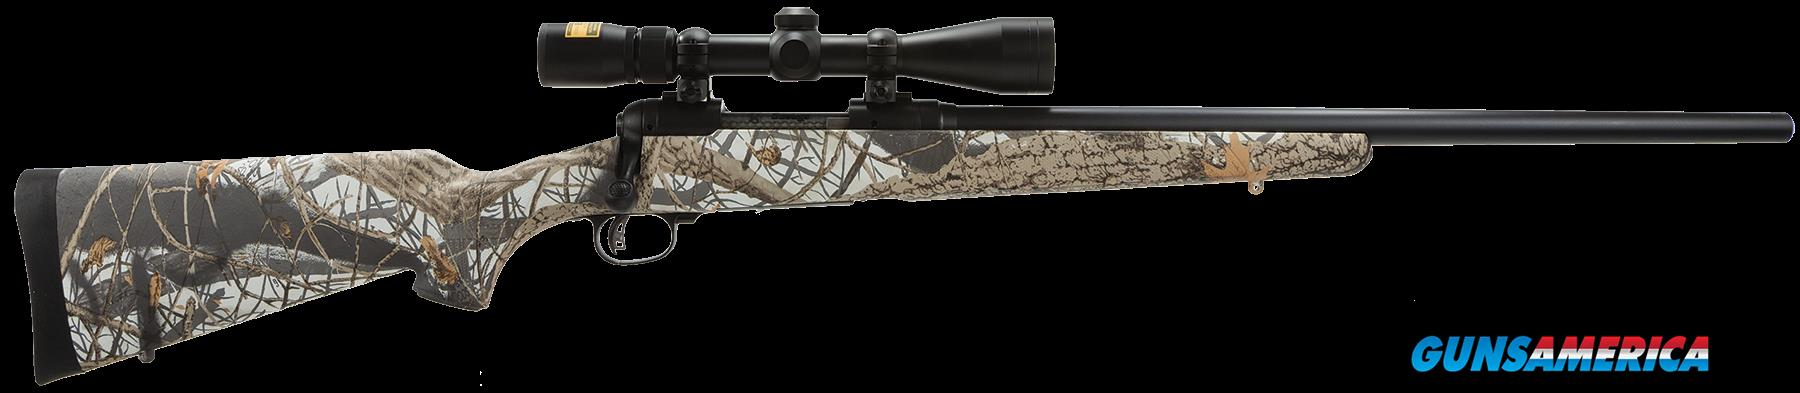 "Savage 22219 11 Trophy Predator Hunter with Scope Bolt 243 Winchester 22"" 4+1 Wood Snow Camo Stk  Guns > Rifles > Savage Rifles > Standard Bolt Action"